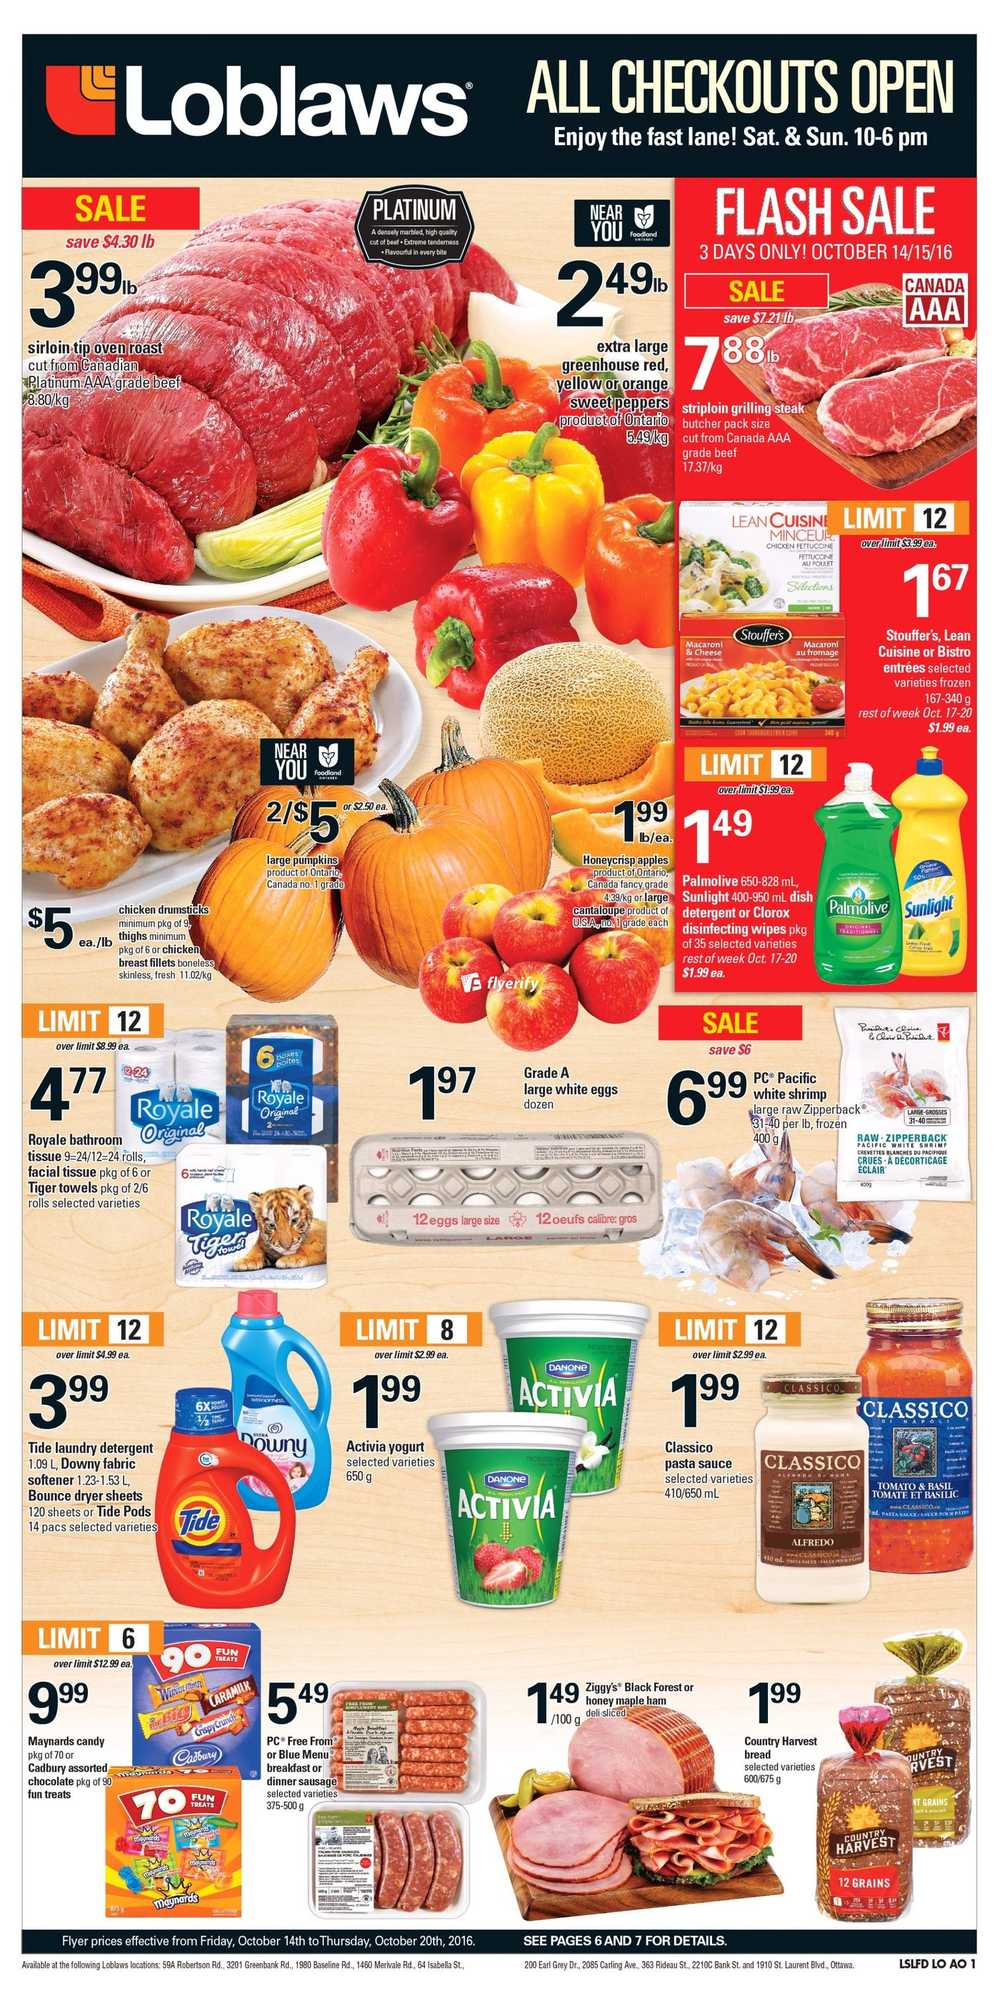 Loblaws Ottawa Region Flyer October 14 To 20 Canada - The Source Flyer Ottawa